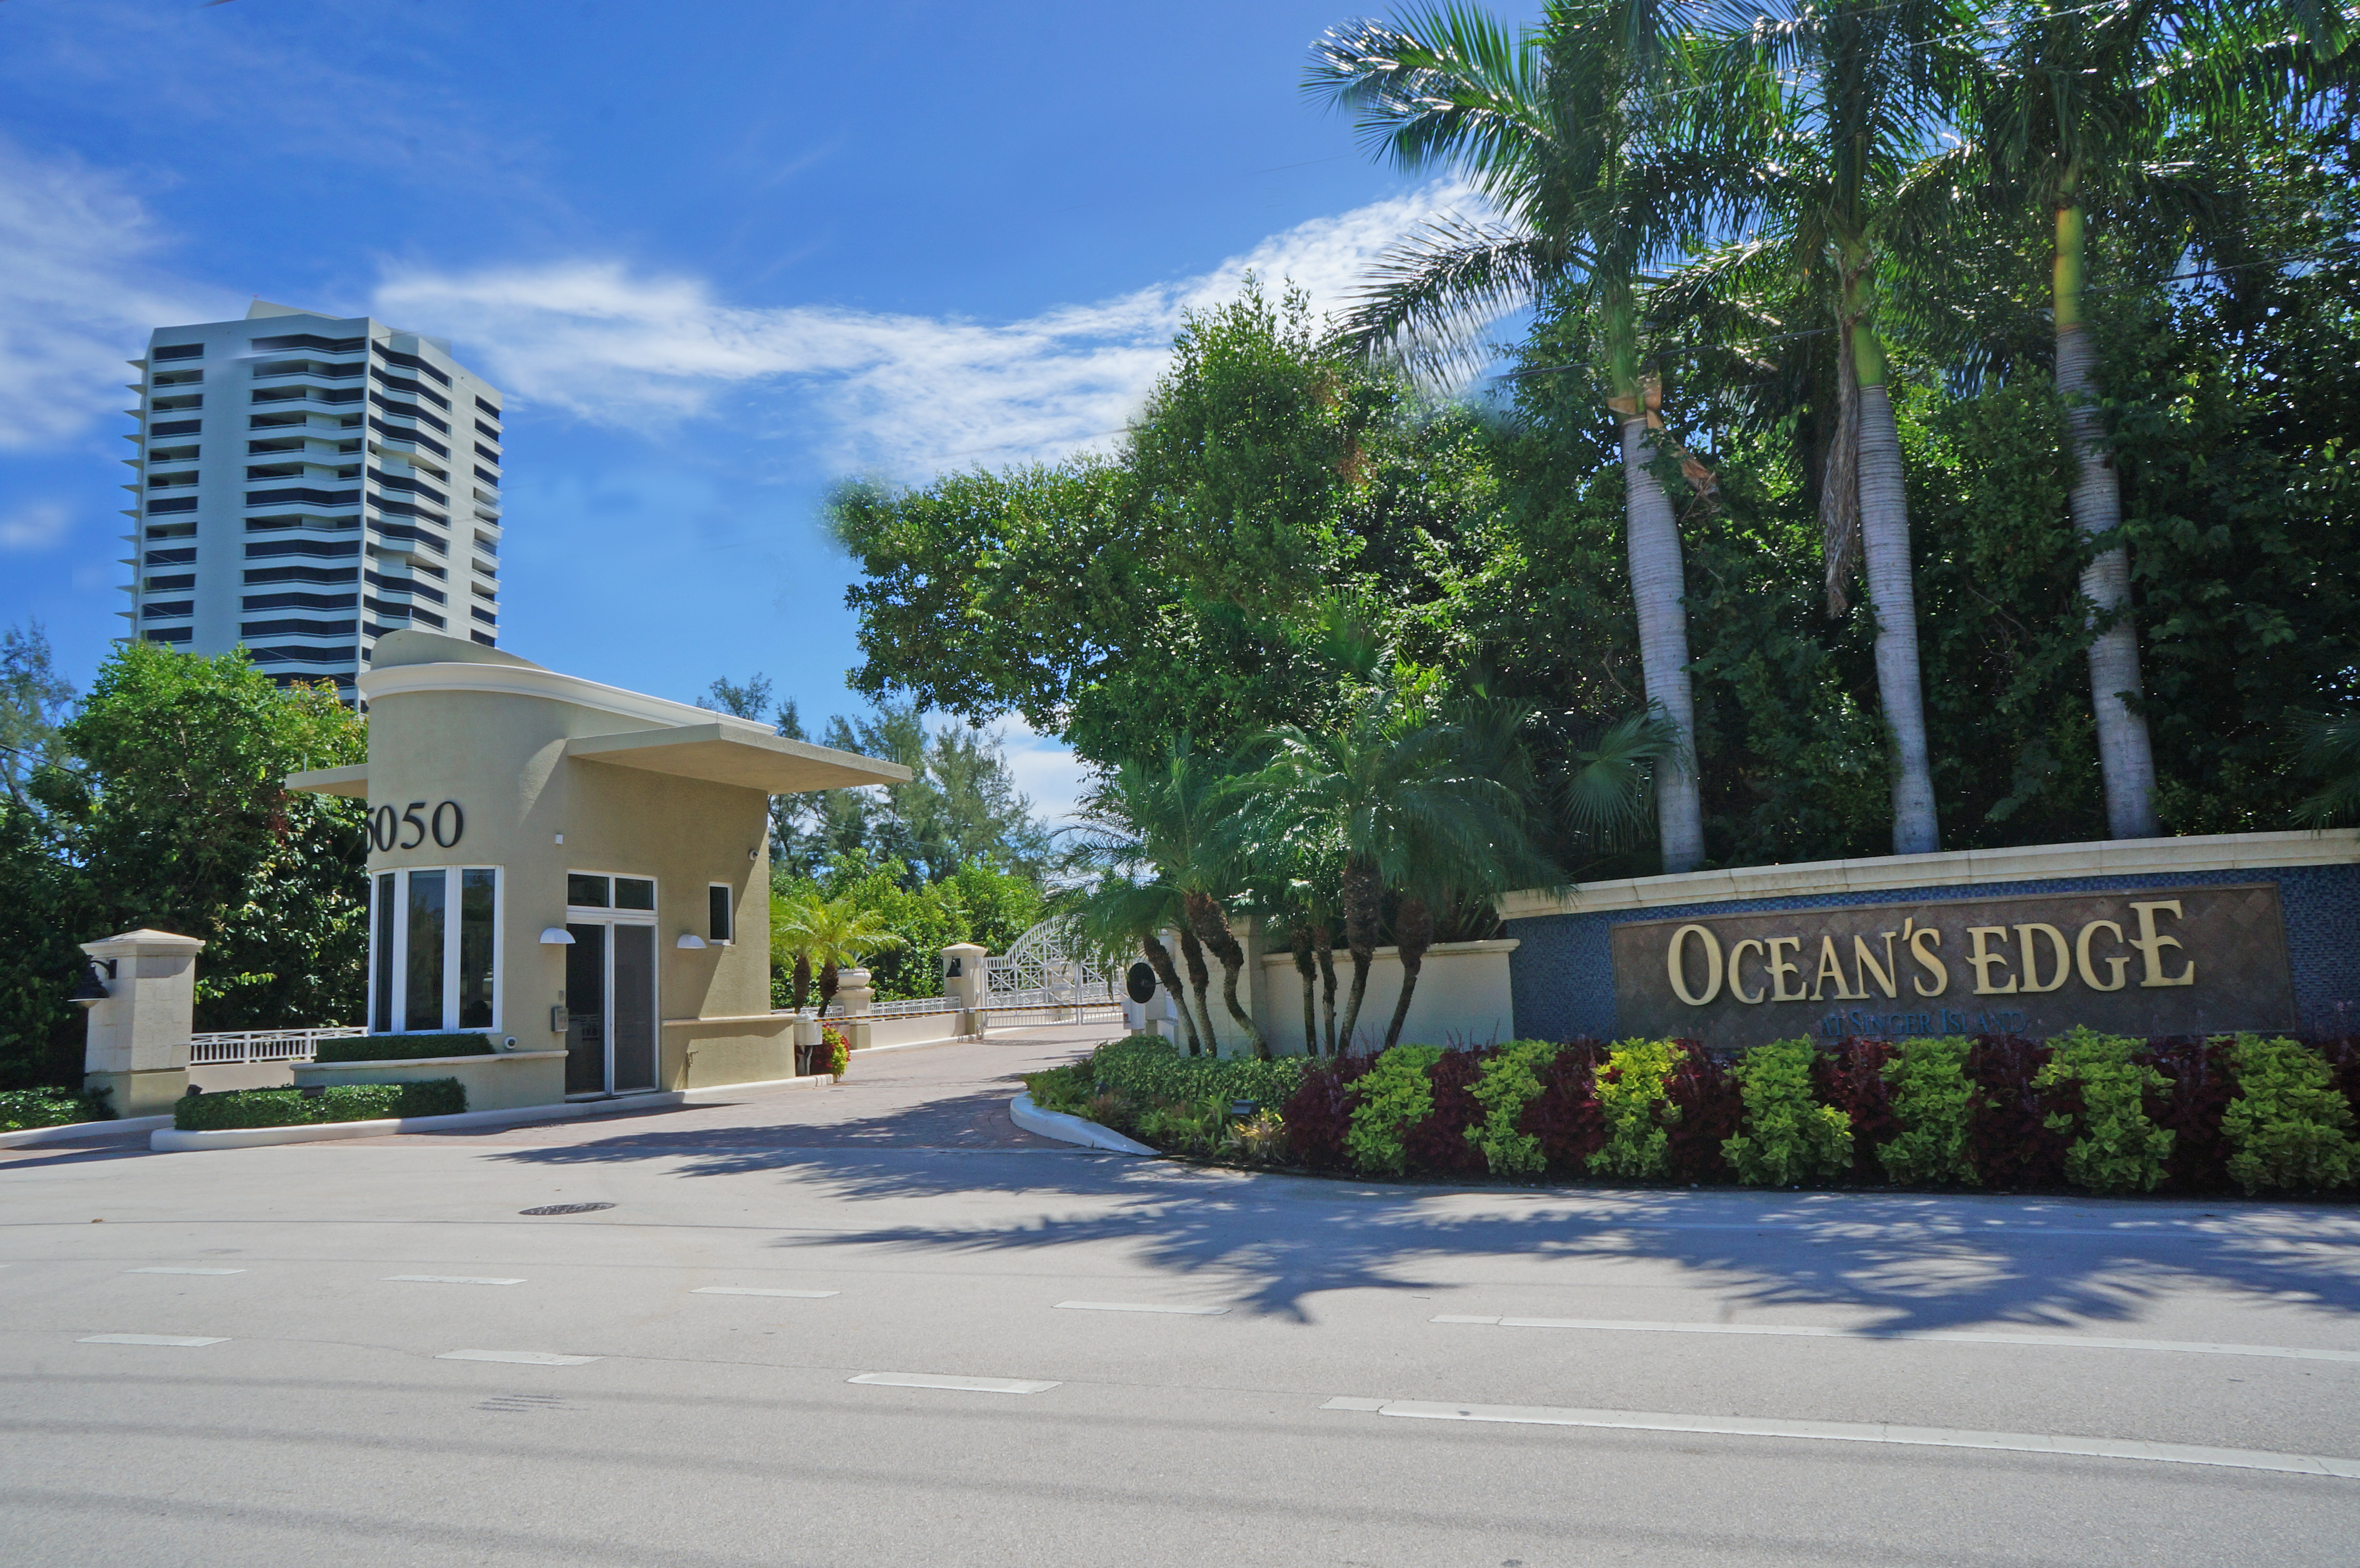 Ocean's Edge Singer Island Luxury Oceanfront Condos in Florida